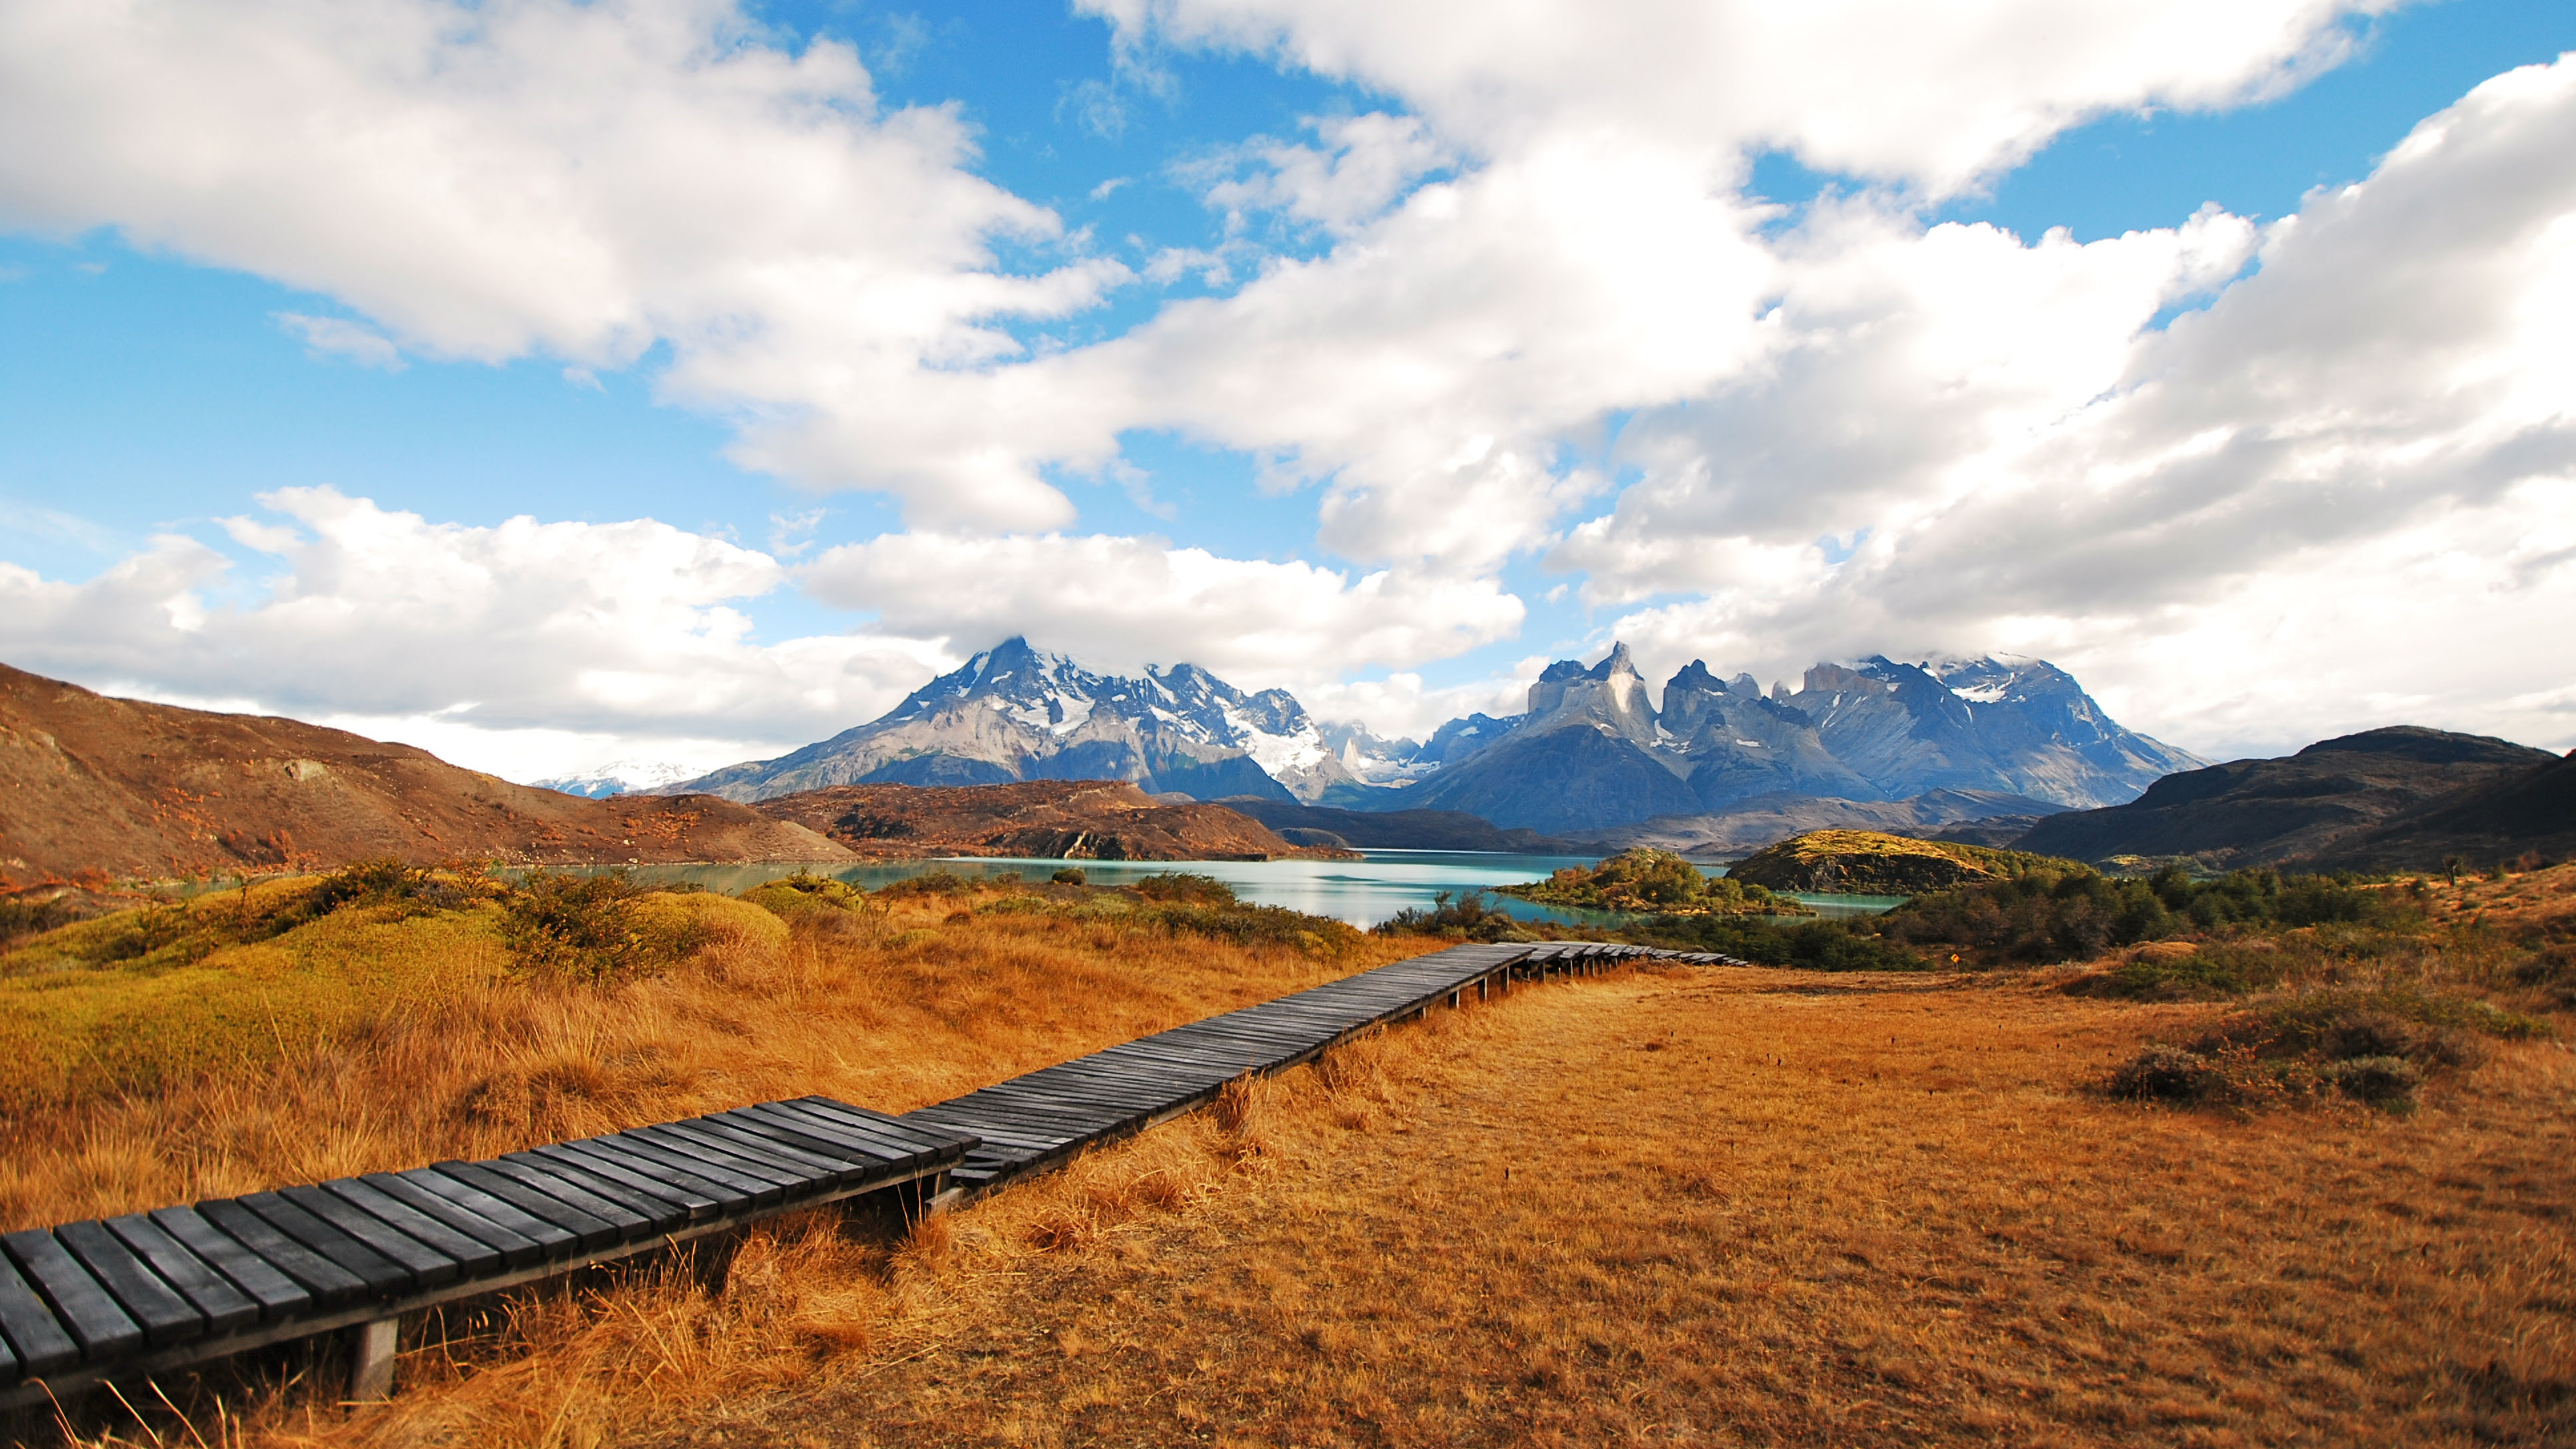 hispanic singles in patagonia Where to go in patagonia, argentina top places to visit and travel destinations - lonely planet.